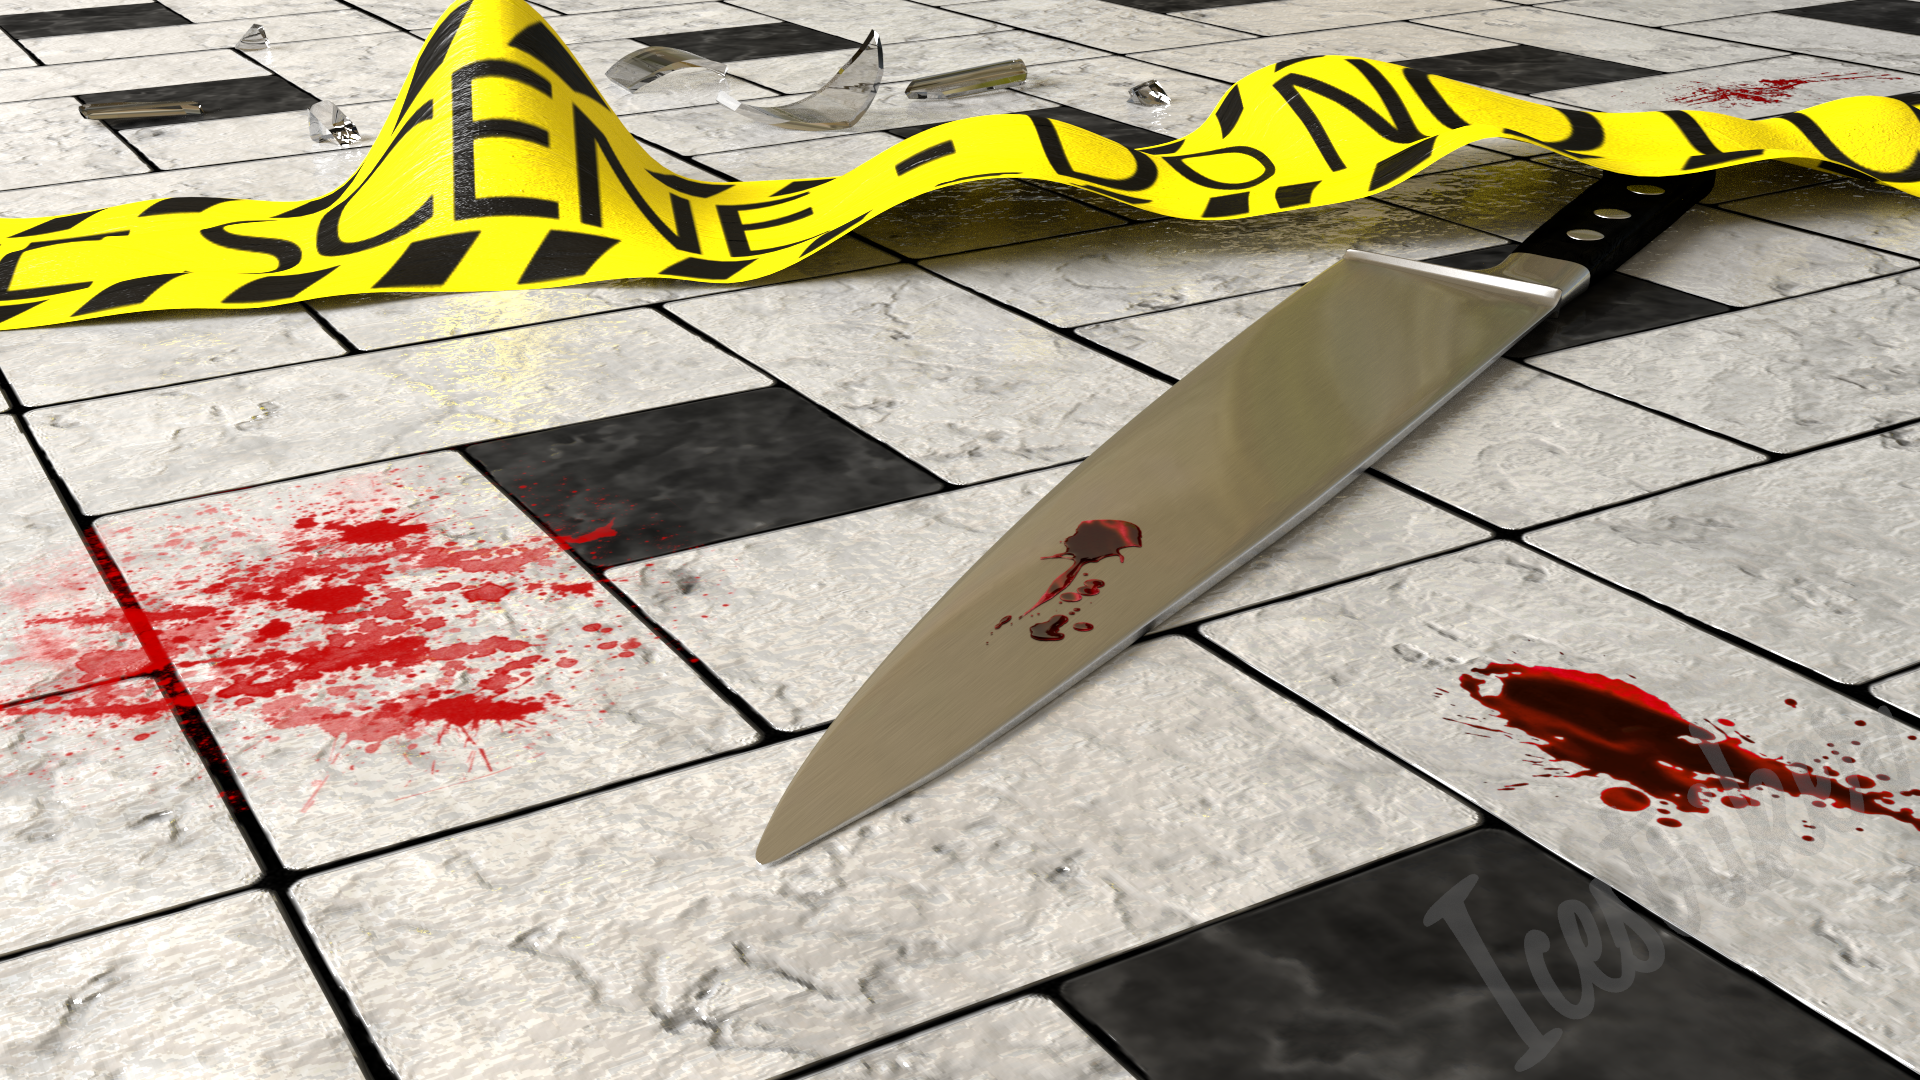 Crime Scene Png Hd Transparent Crime Scene Hd Png Images